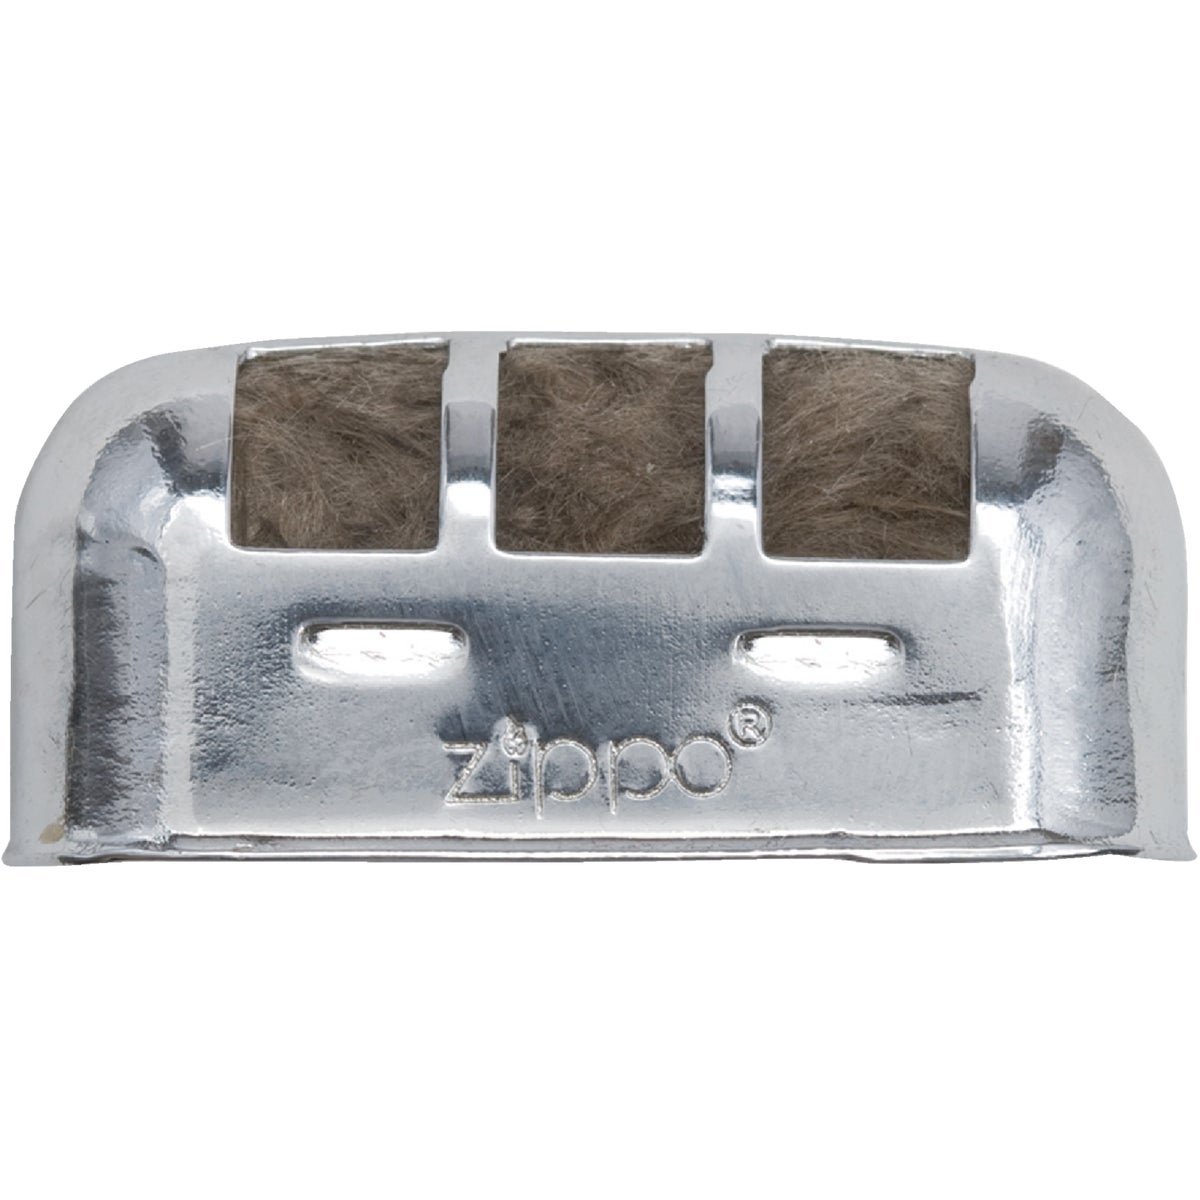 Zippo-Ronson Chrome Hand Warmer Replacement at Sears.com